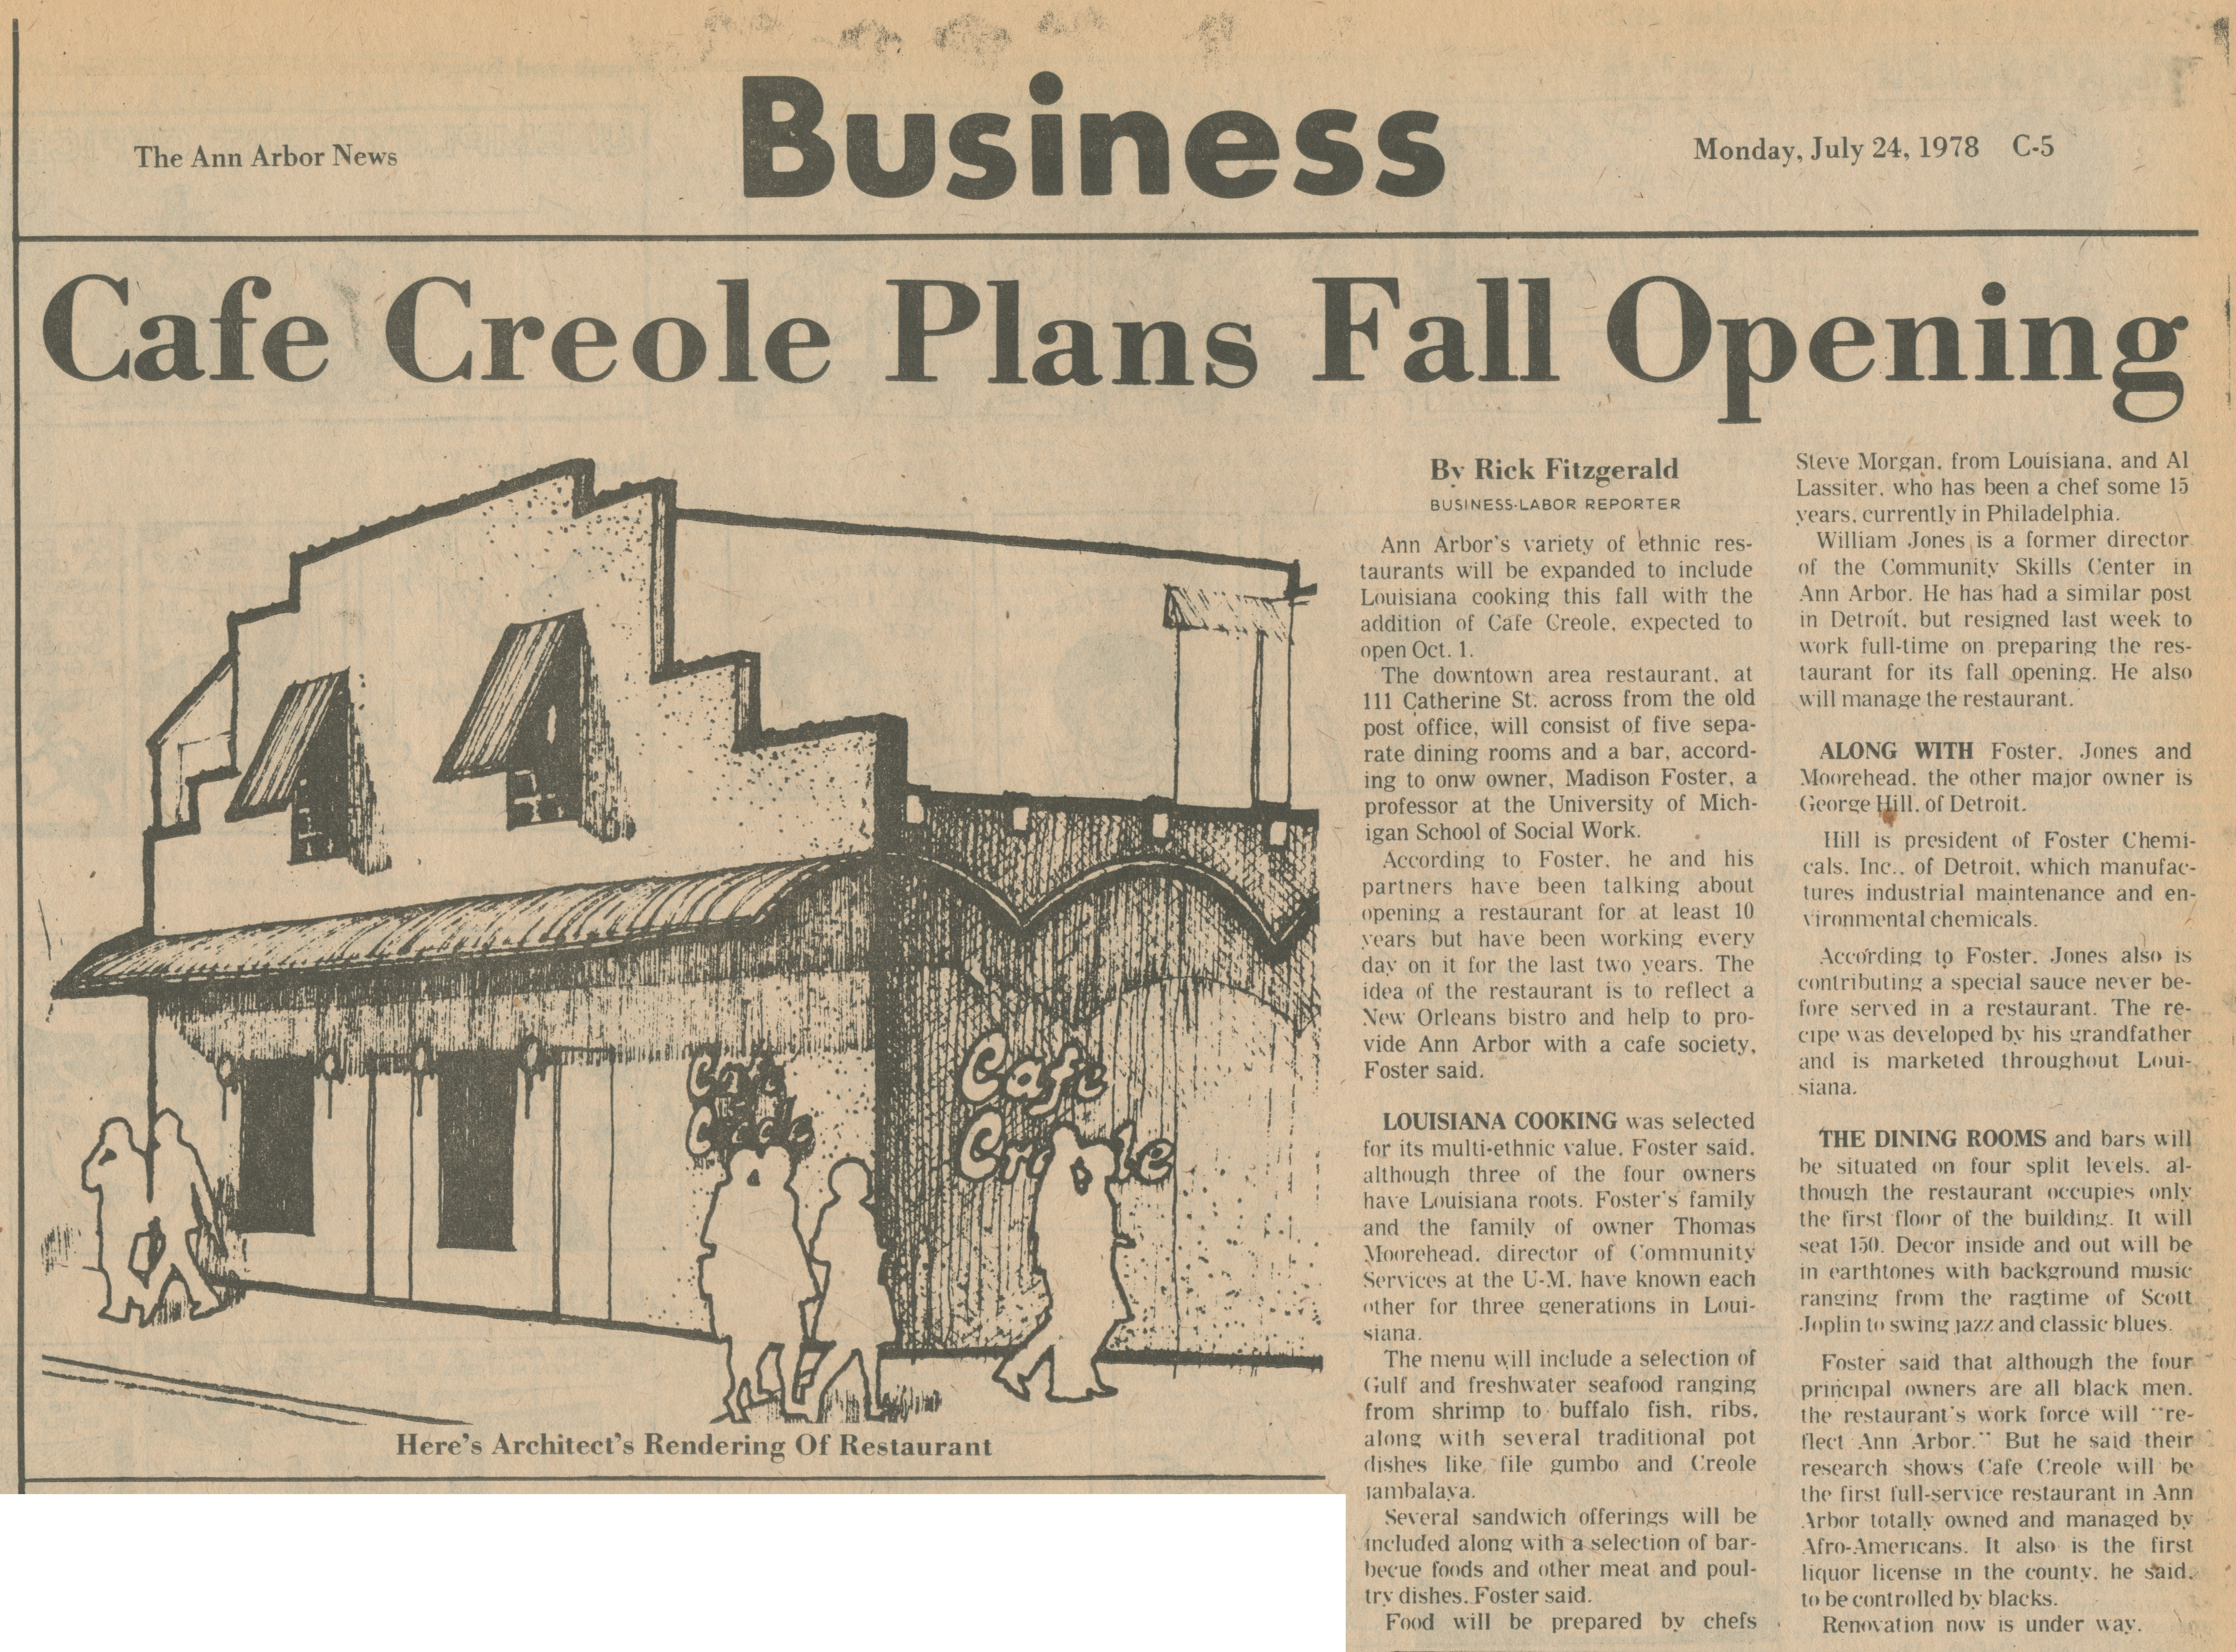 Cafe Creole Plans Fall Opening image